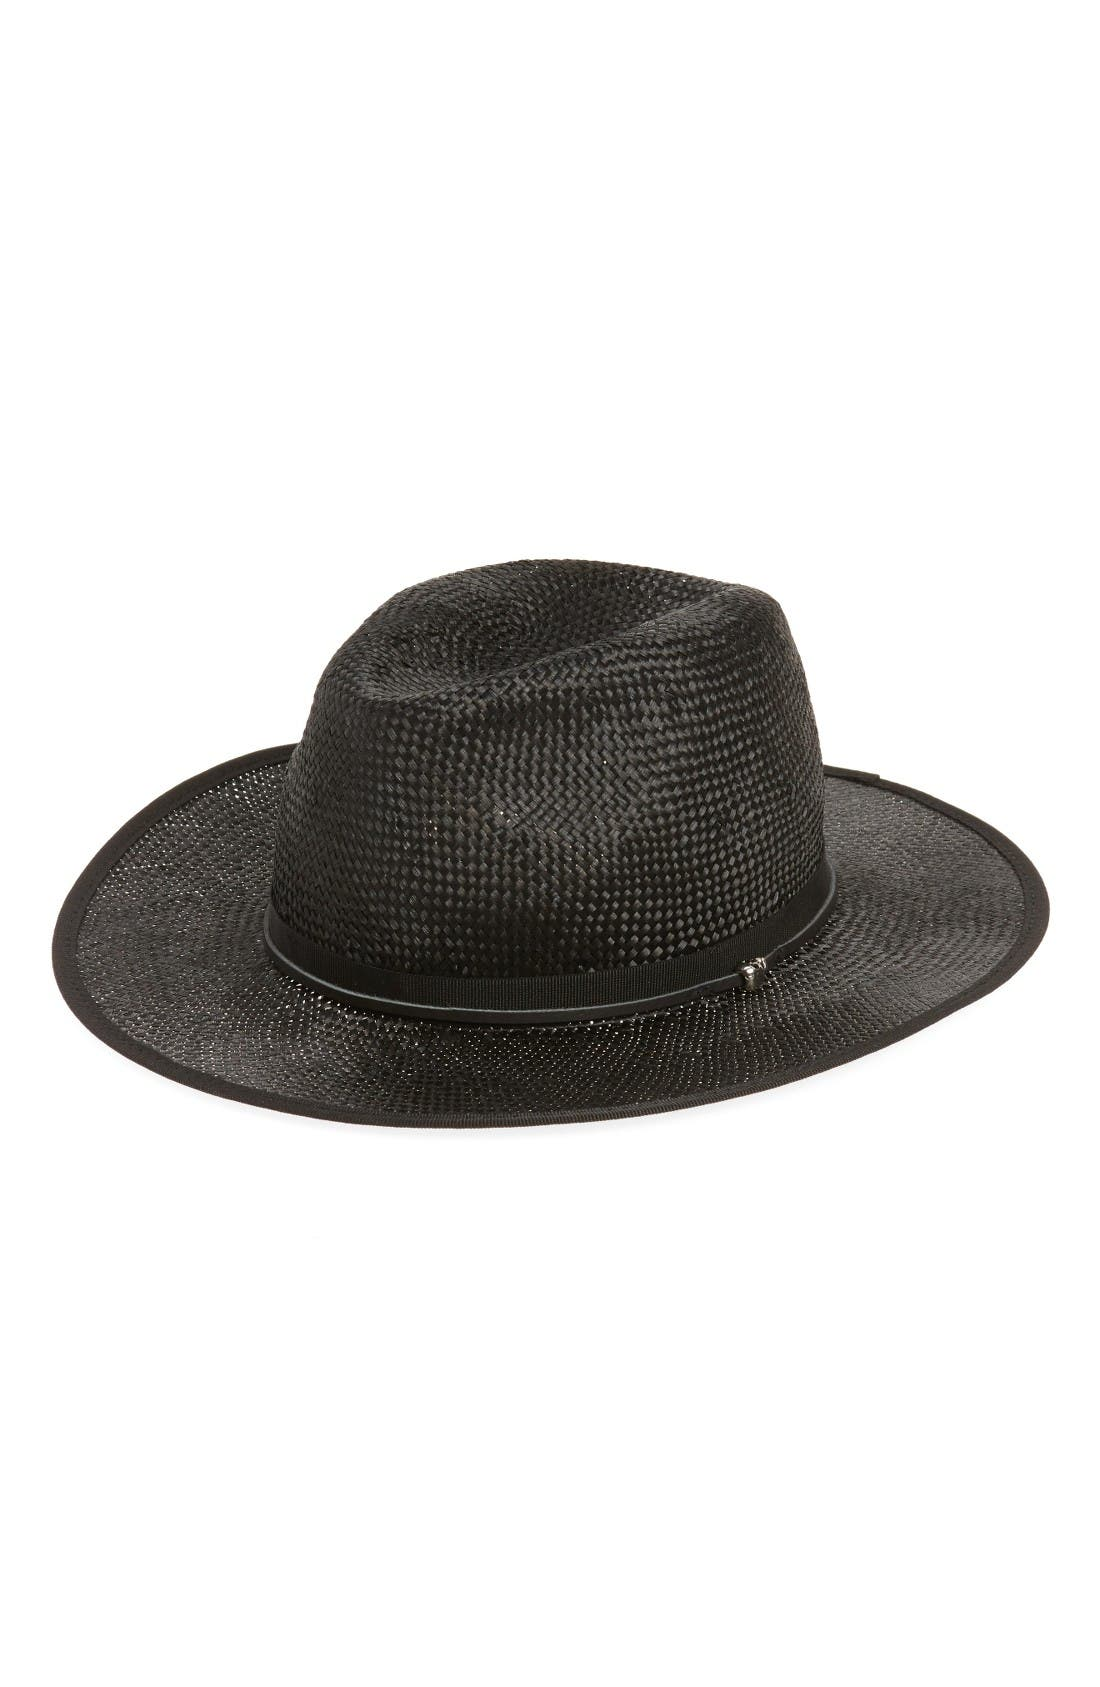 Alternate Image 1 Selected - The Kooples Leather Trim Straw Hat